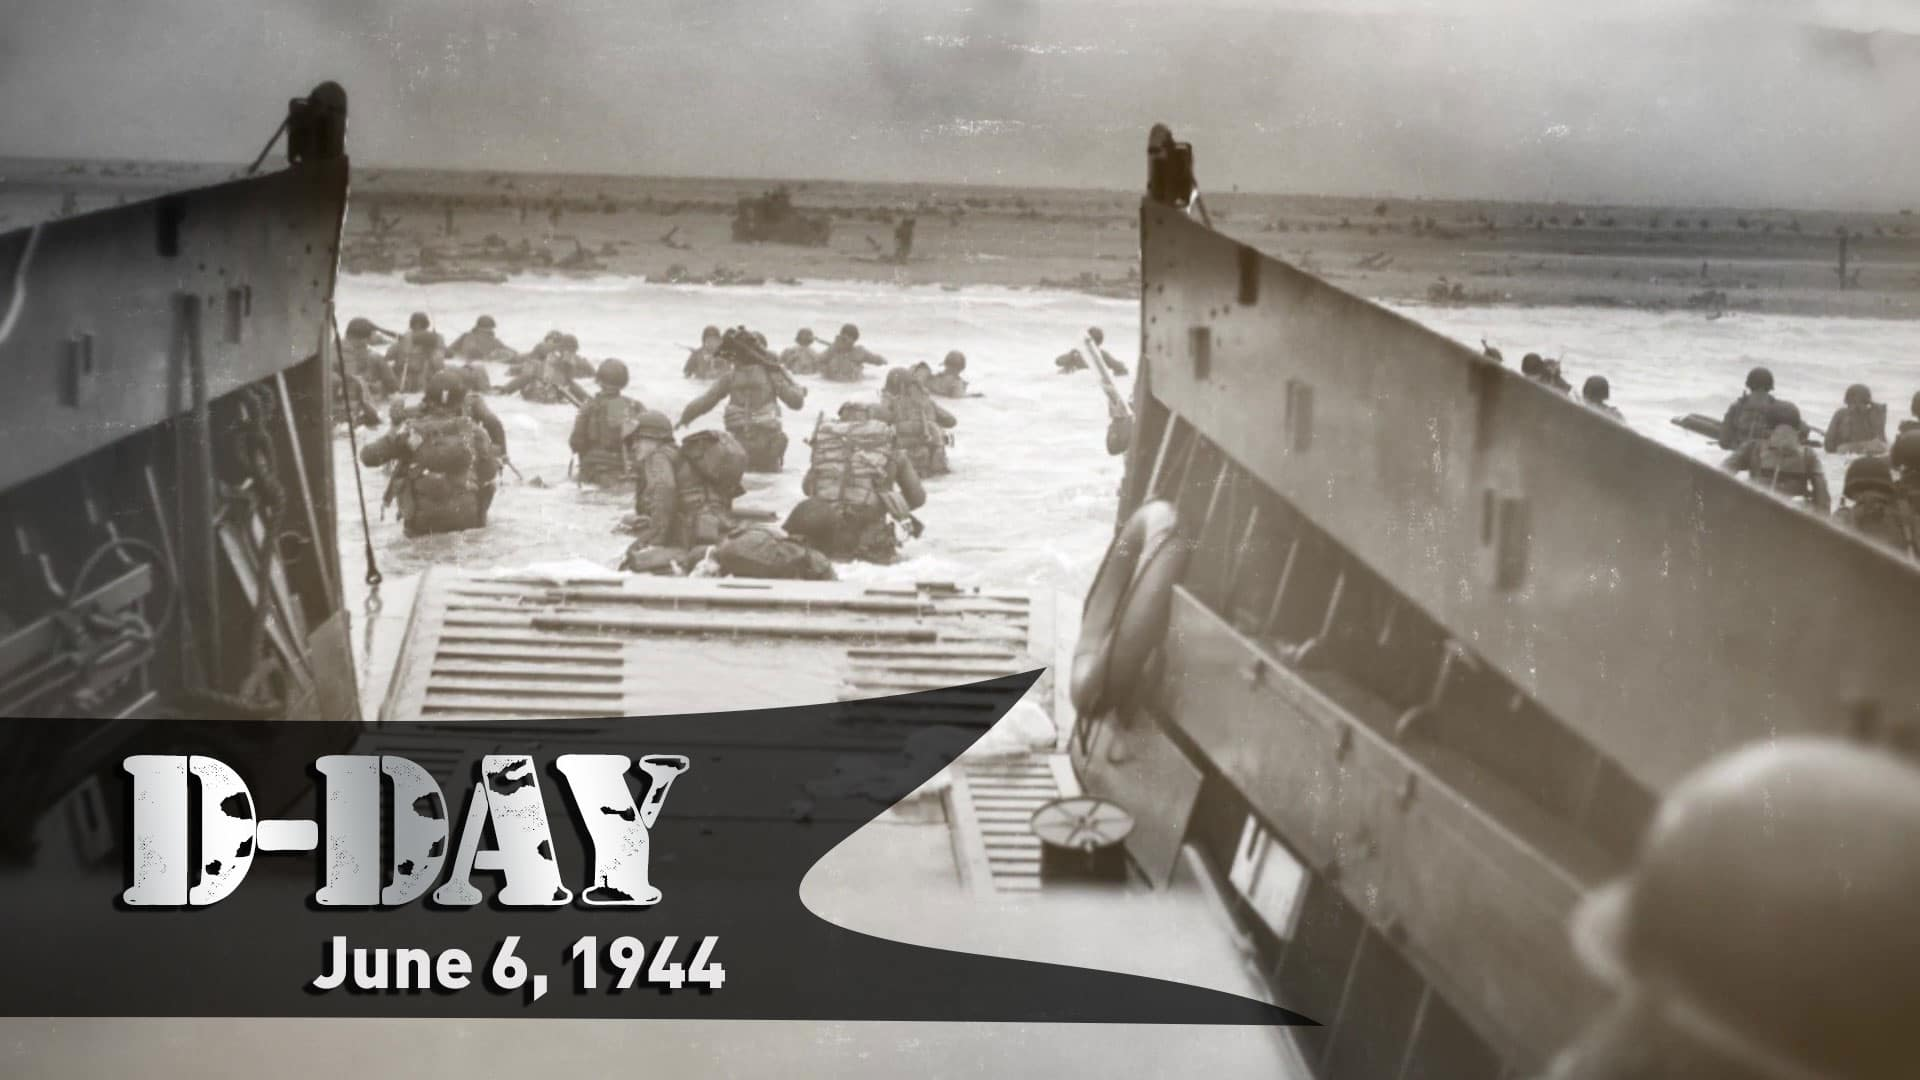 A video commemorating the D-Day Anniversary